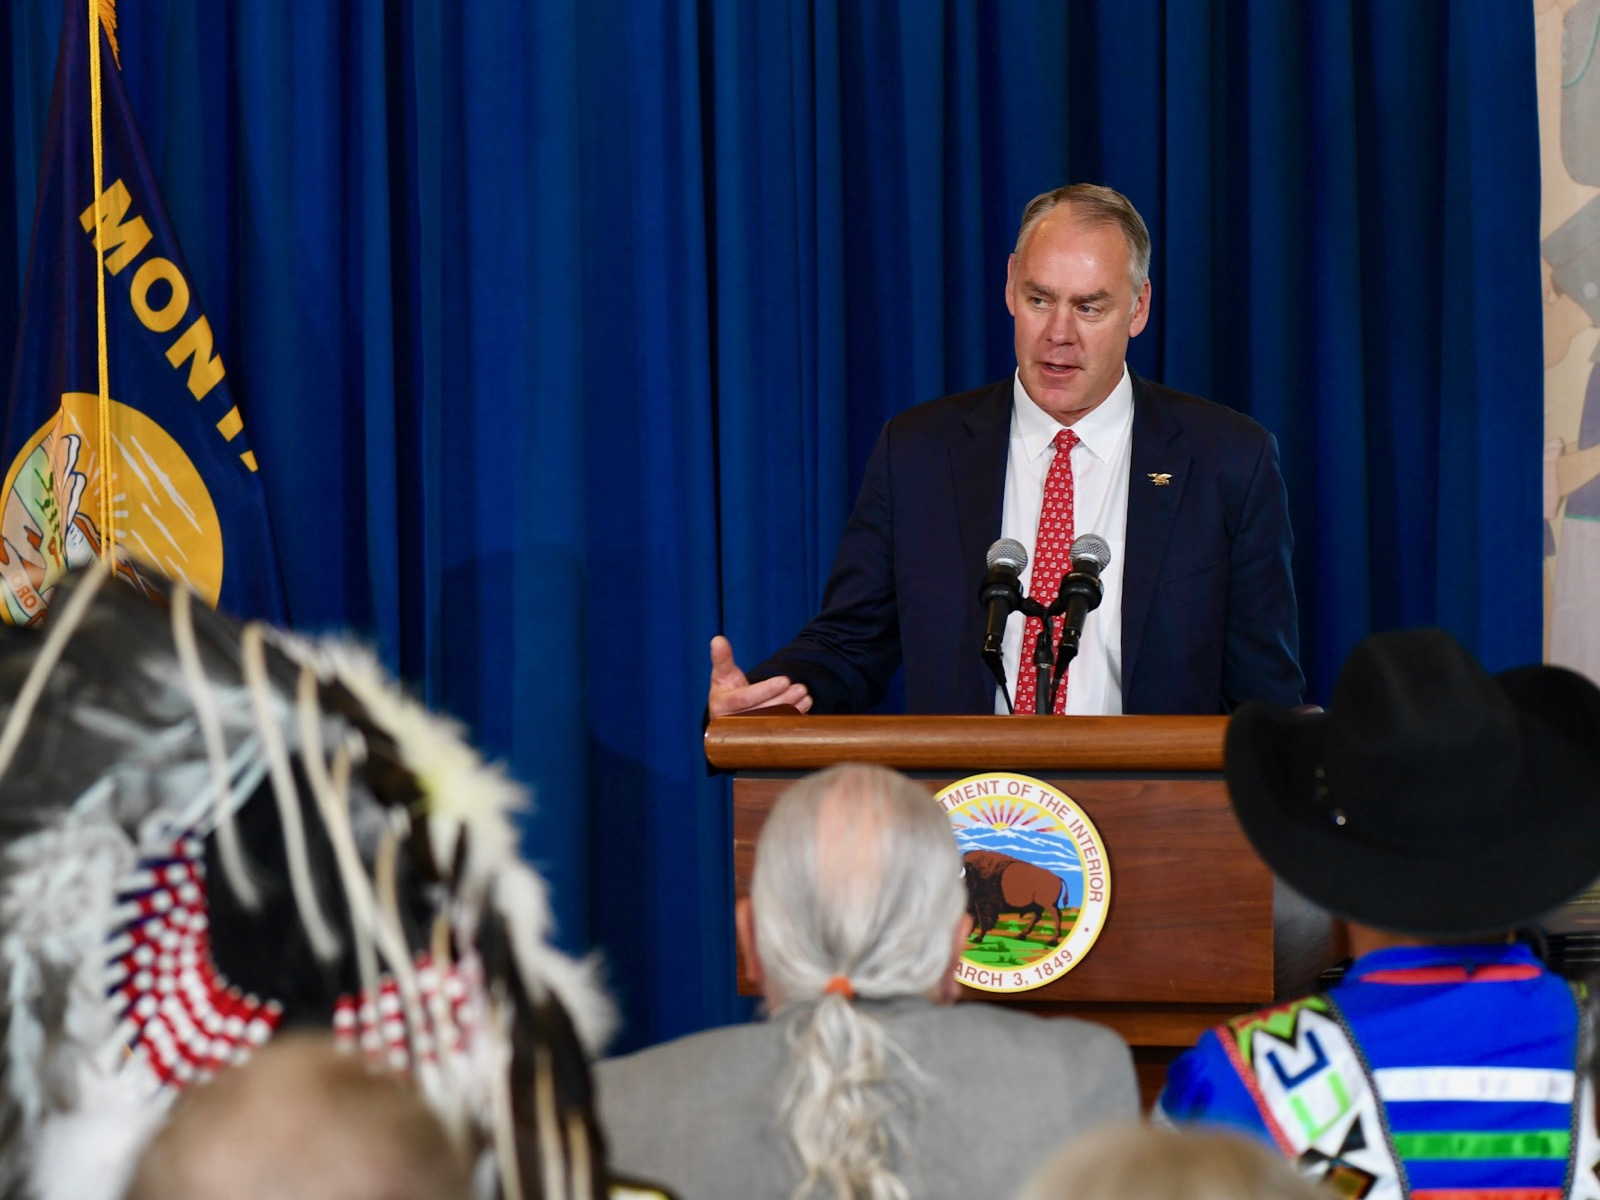 Secretary Zinke blames Democrats for delaying Indian Affairs nominee